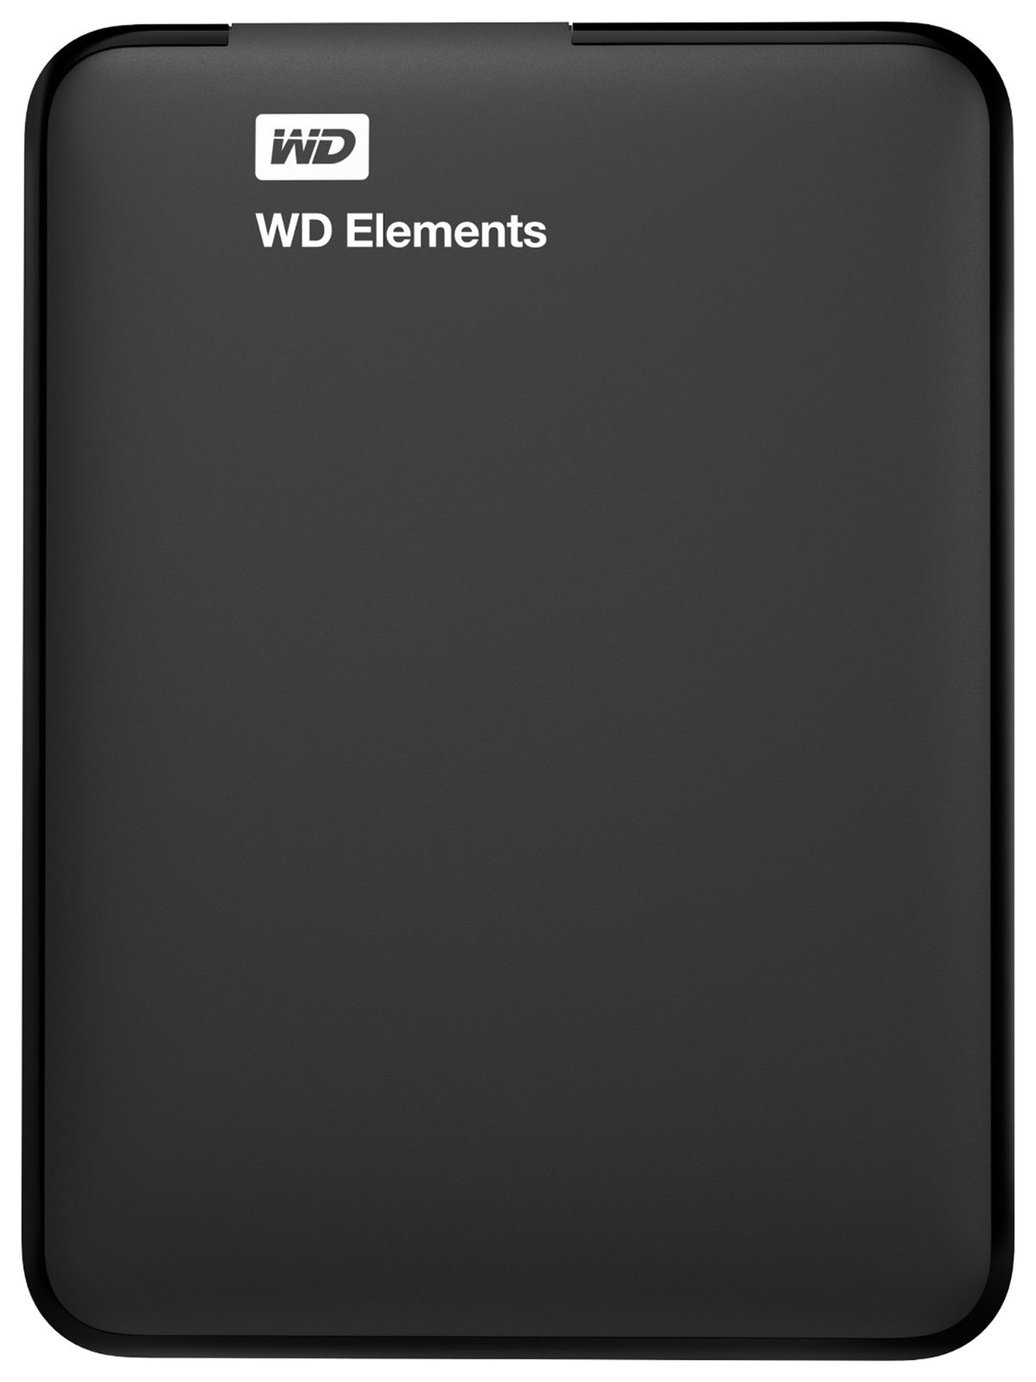 WD Elements 1TB Mobile External Hard External in Black - USB2.0 & USB3.0 Best Price and Cheapest